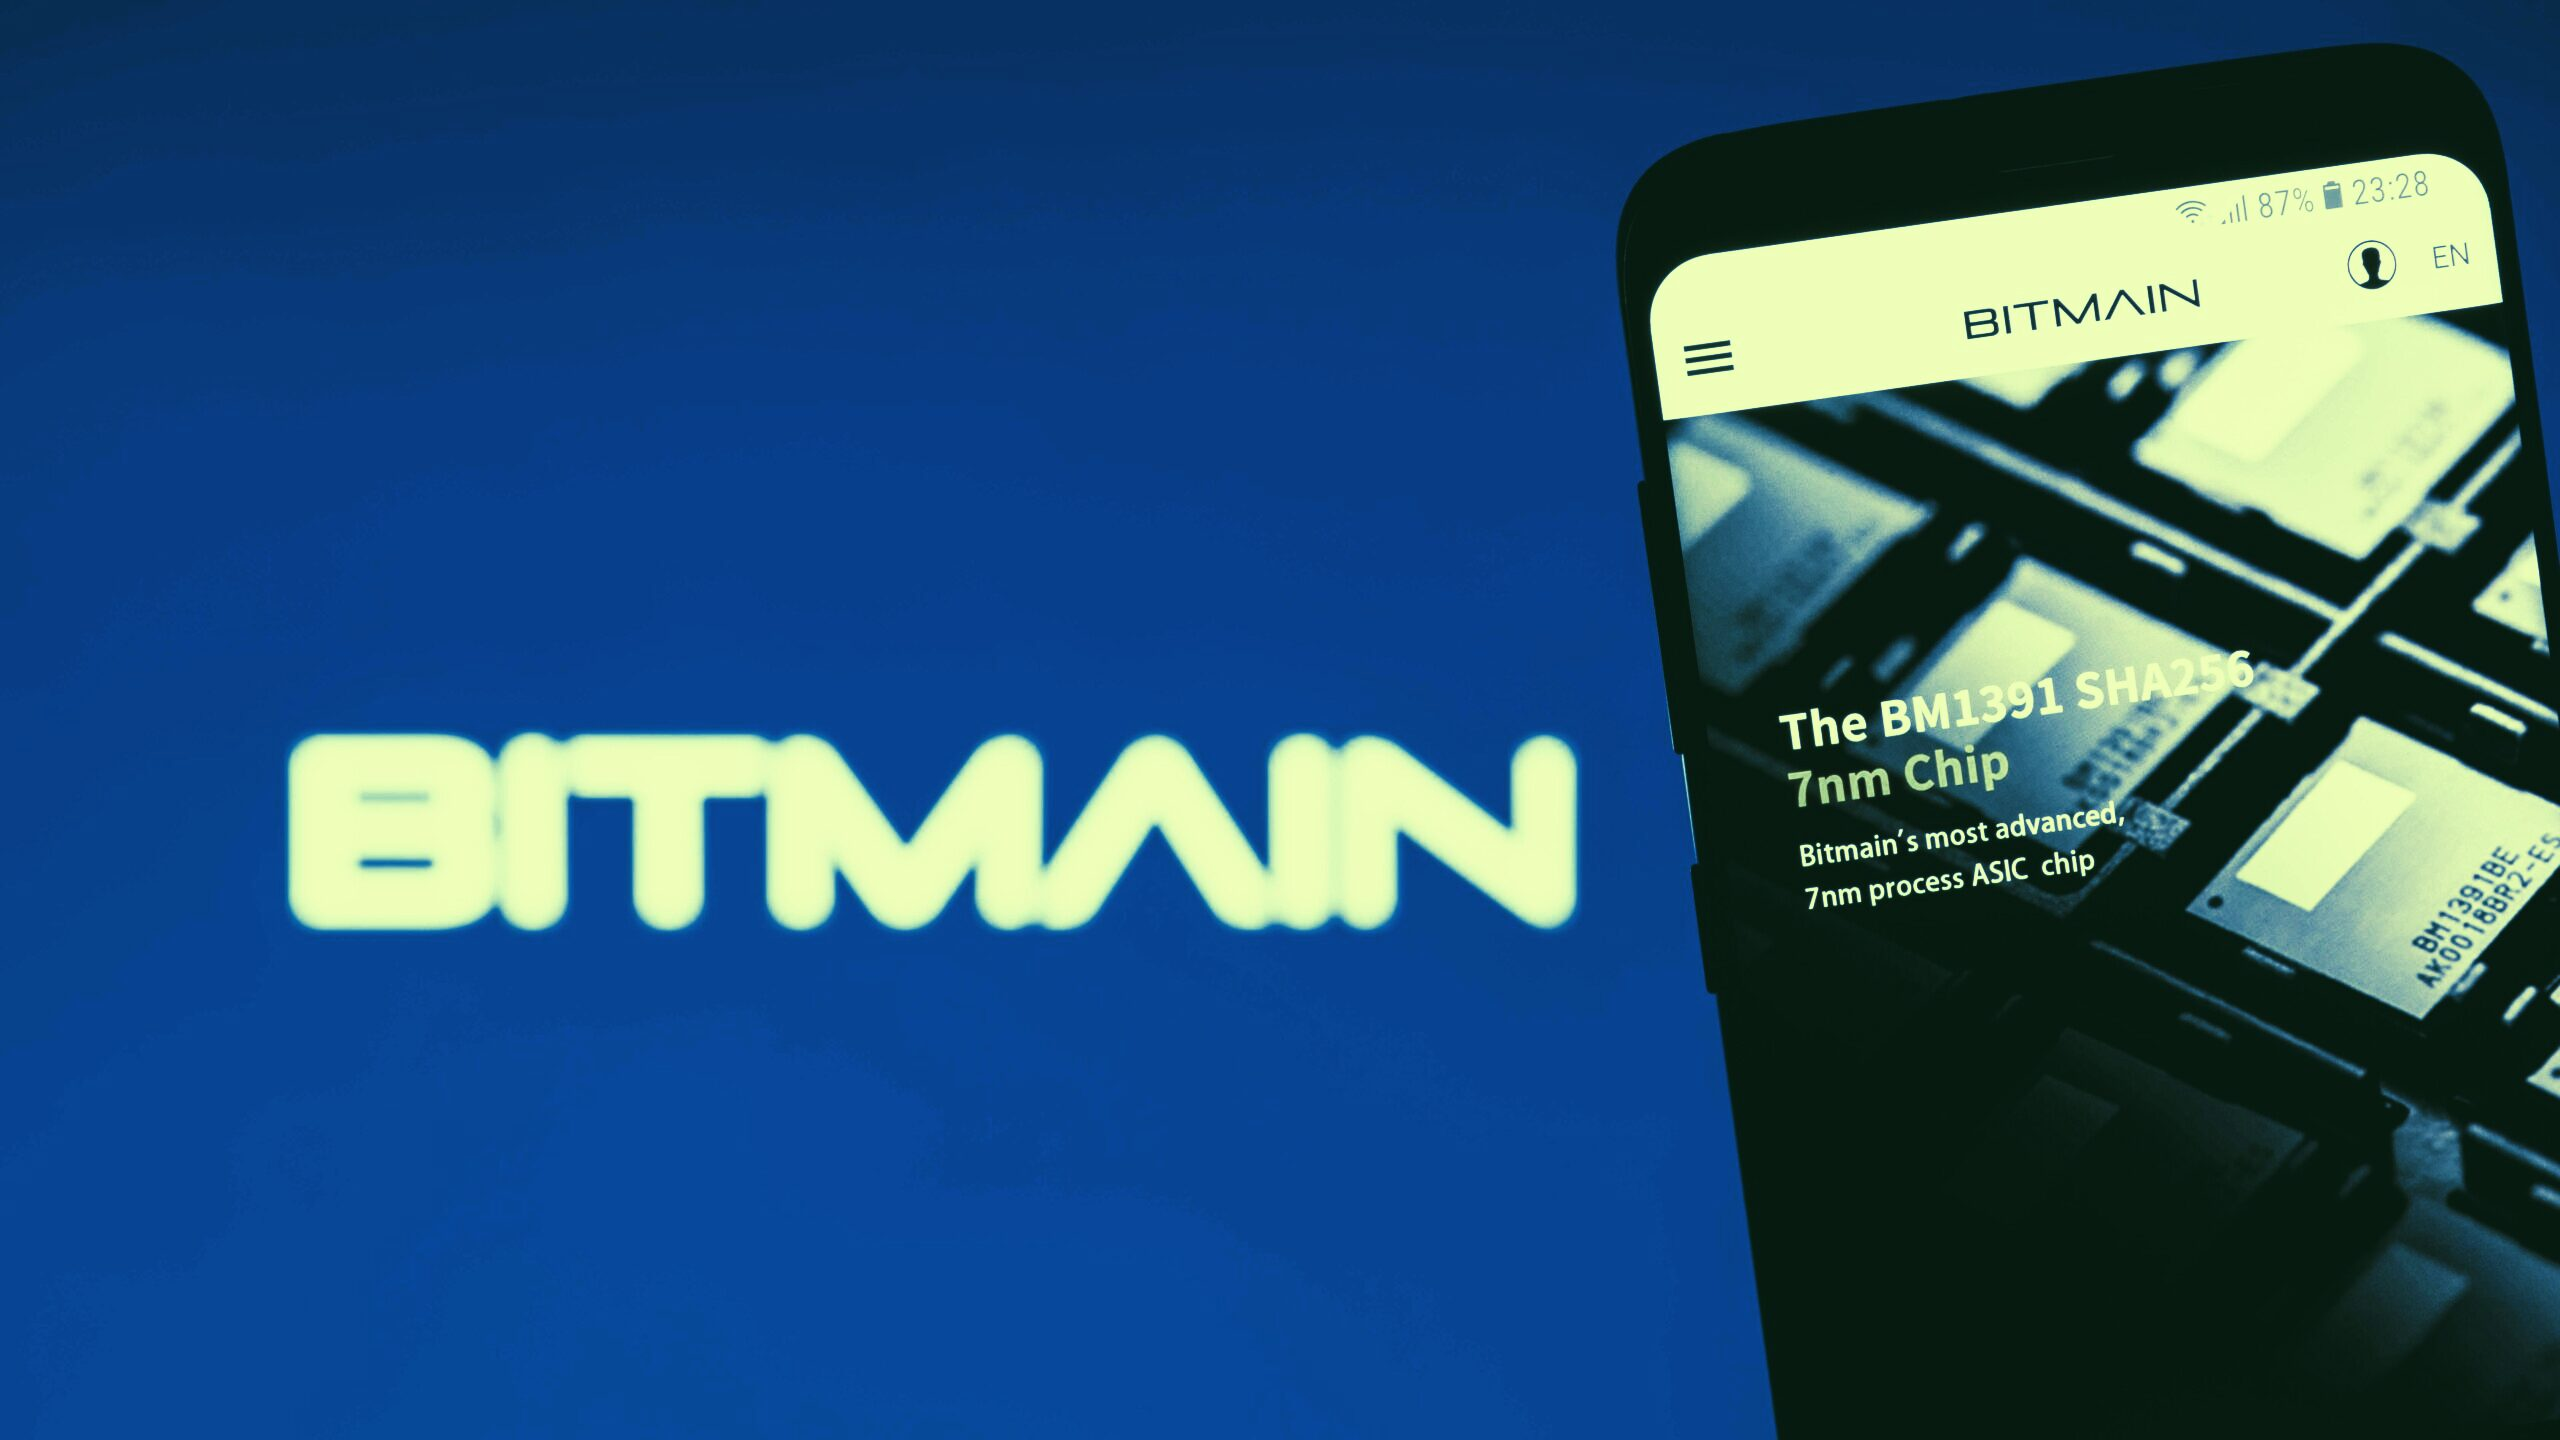 Bitmain Releases Mining Machine For Dogecoin and Litecoin: Reports